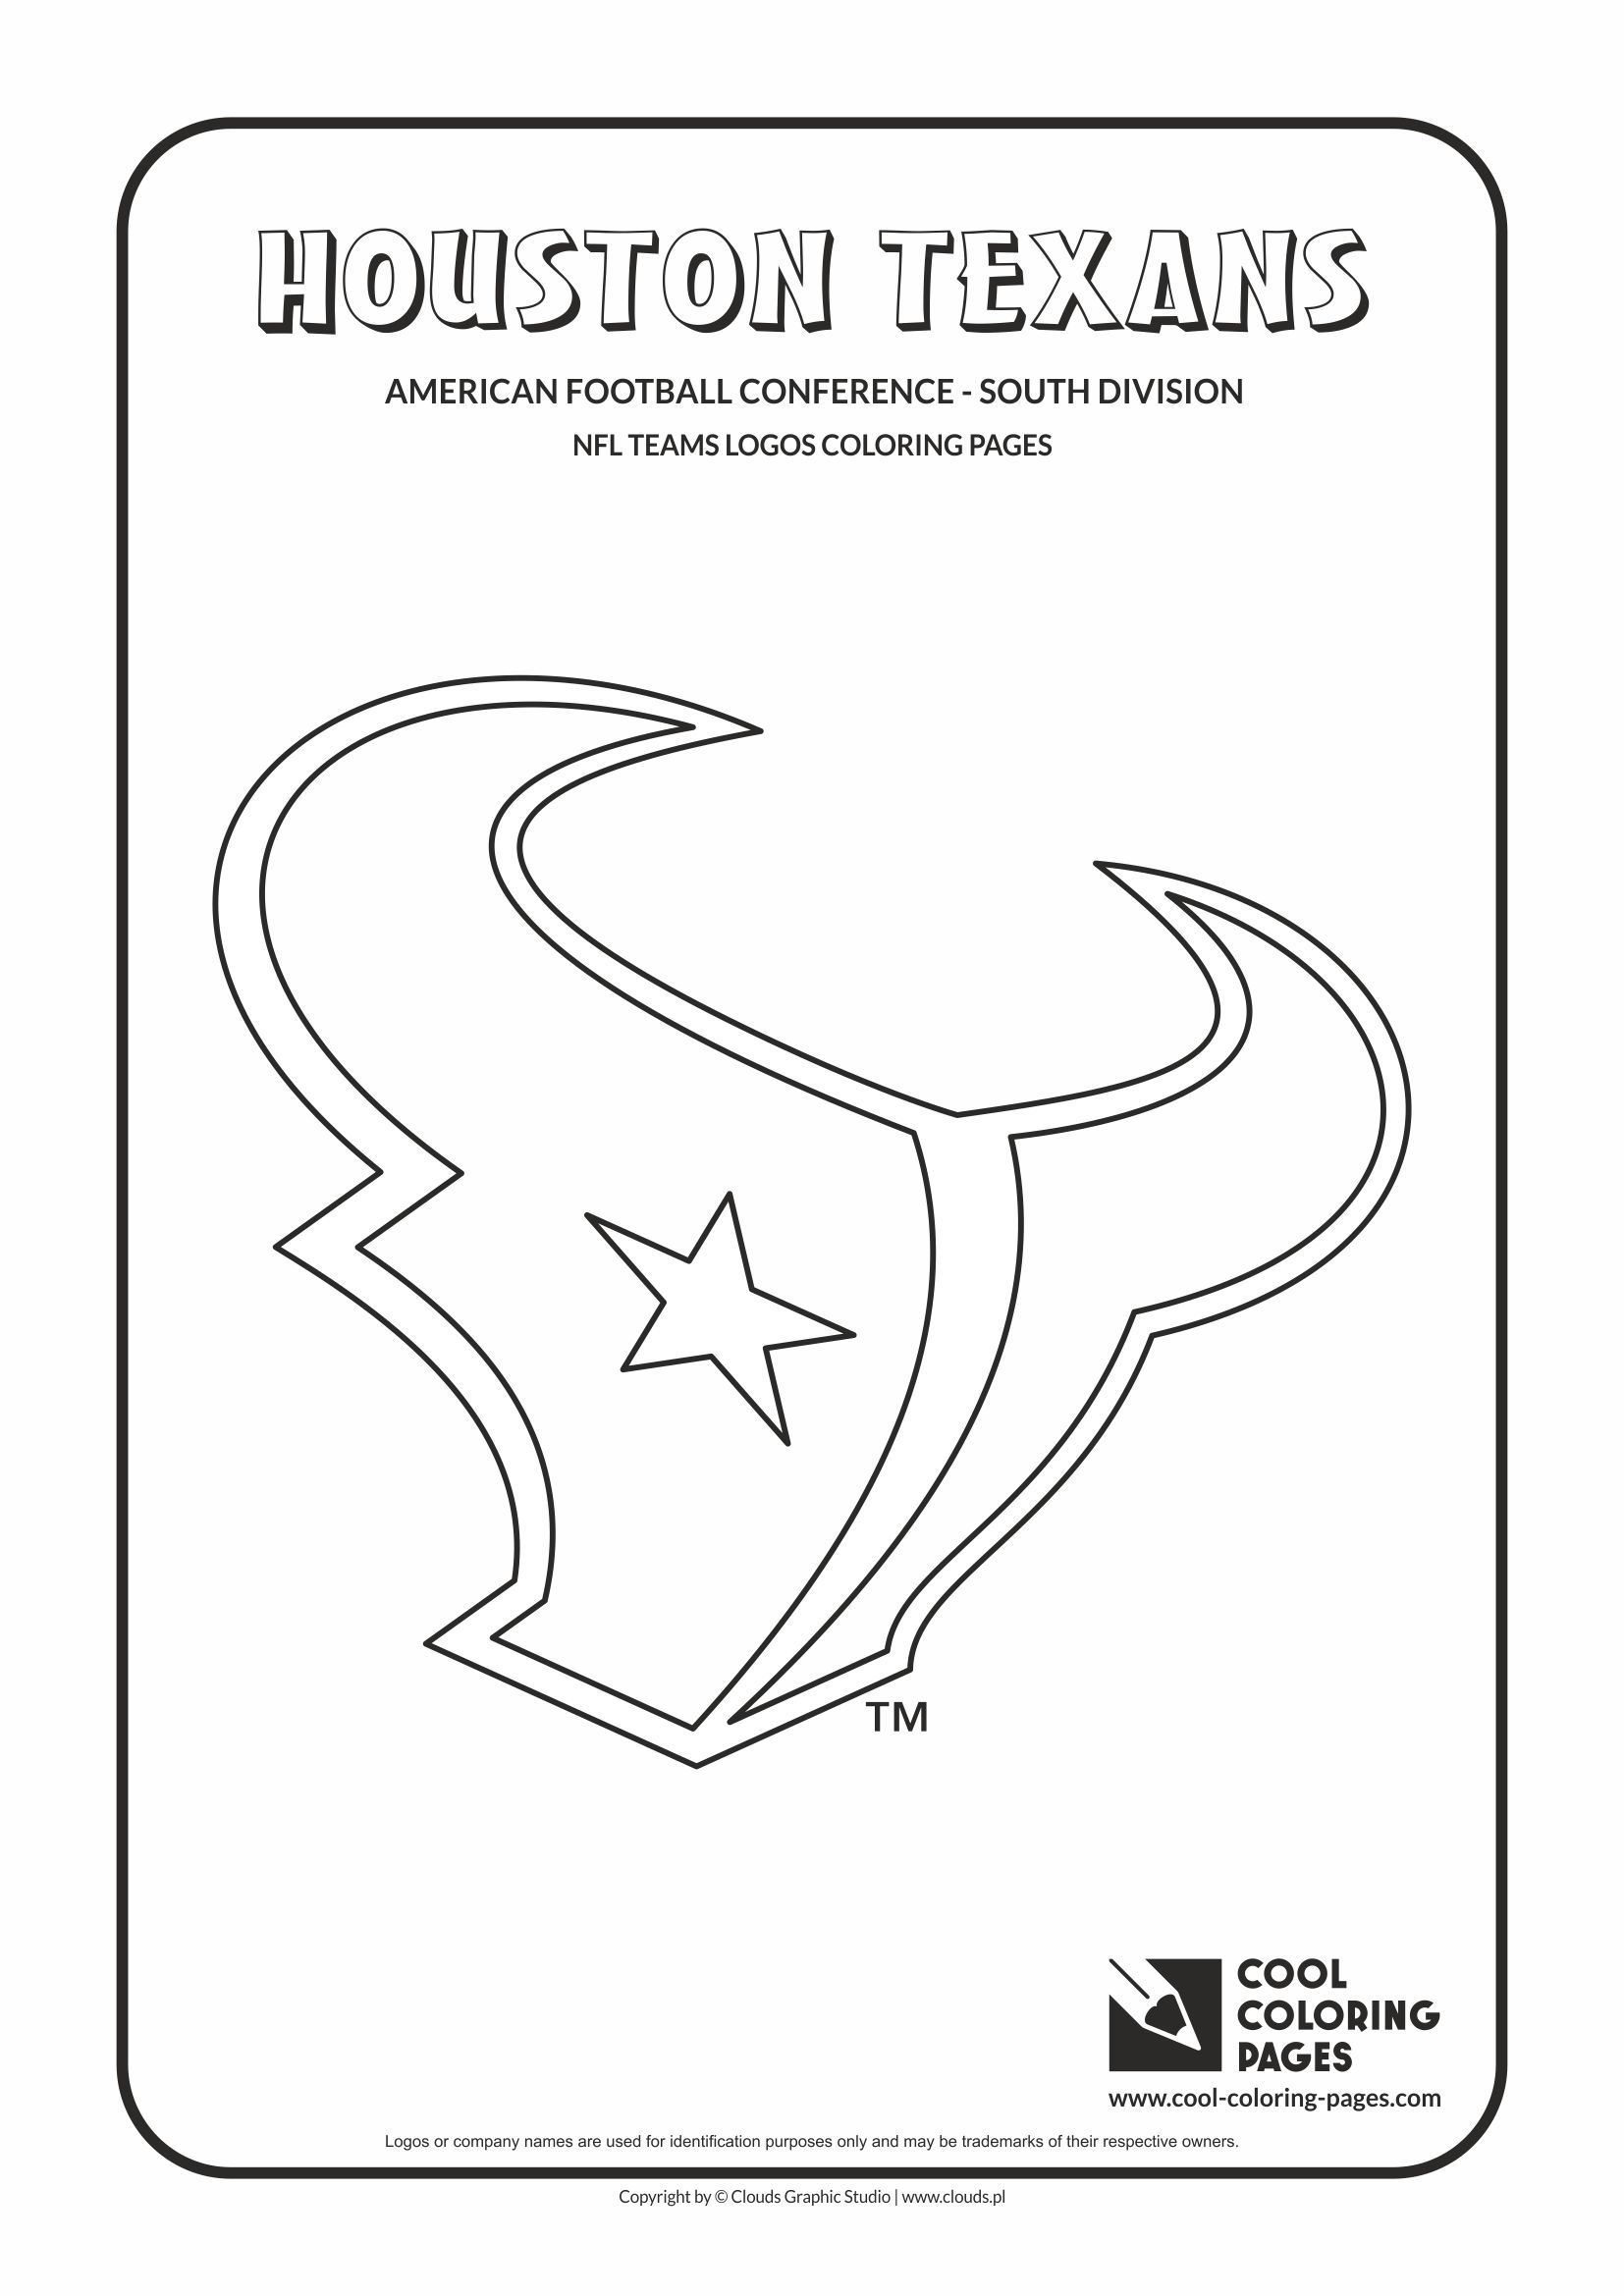 Cool Coloring Pages - NFL American Football Clubs Logos - American Football Conference - South Division / Houston Texans logo / Coloring page with Houston Texans logo